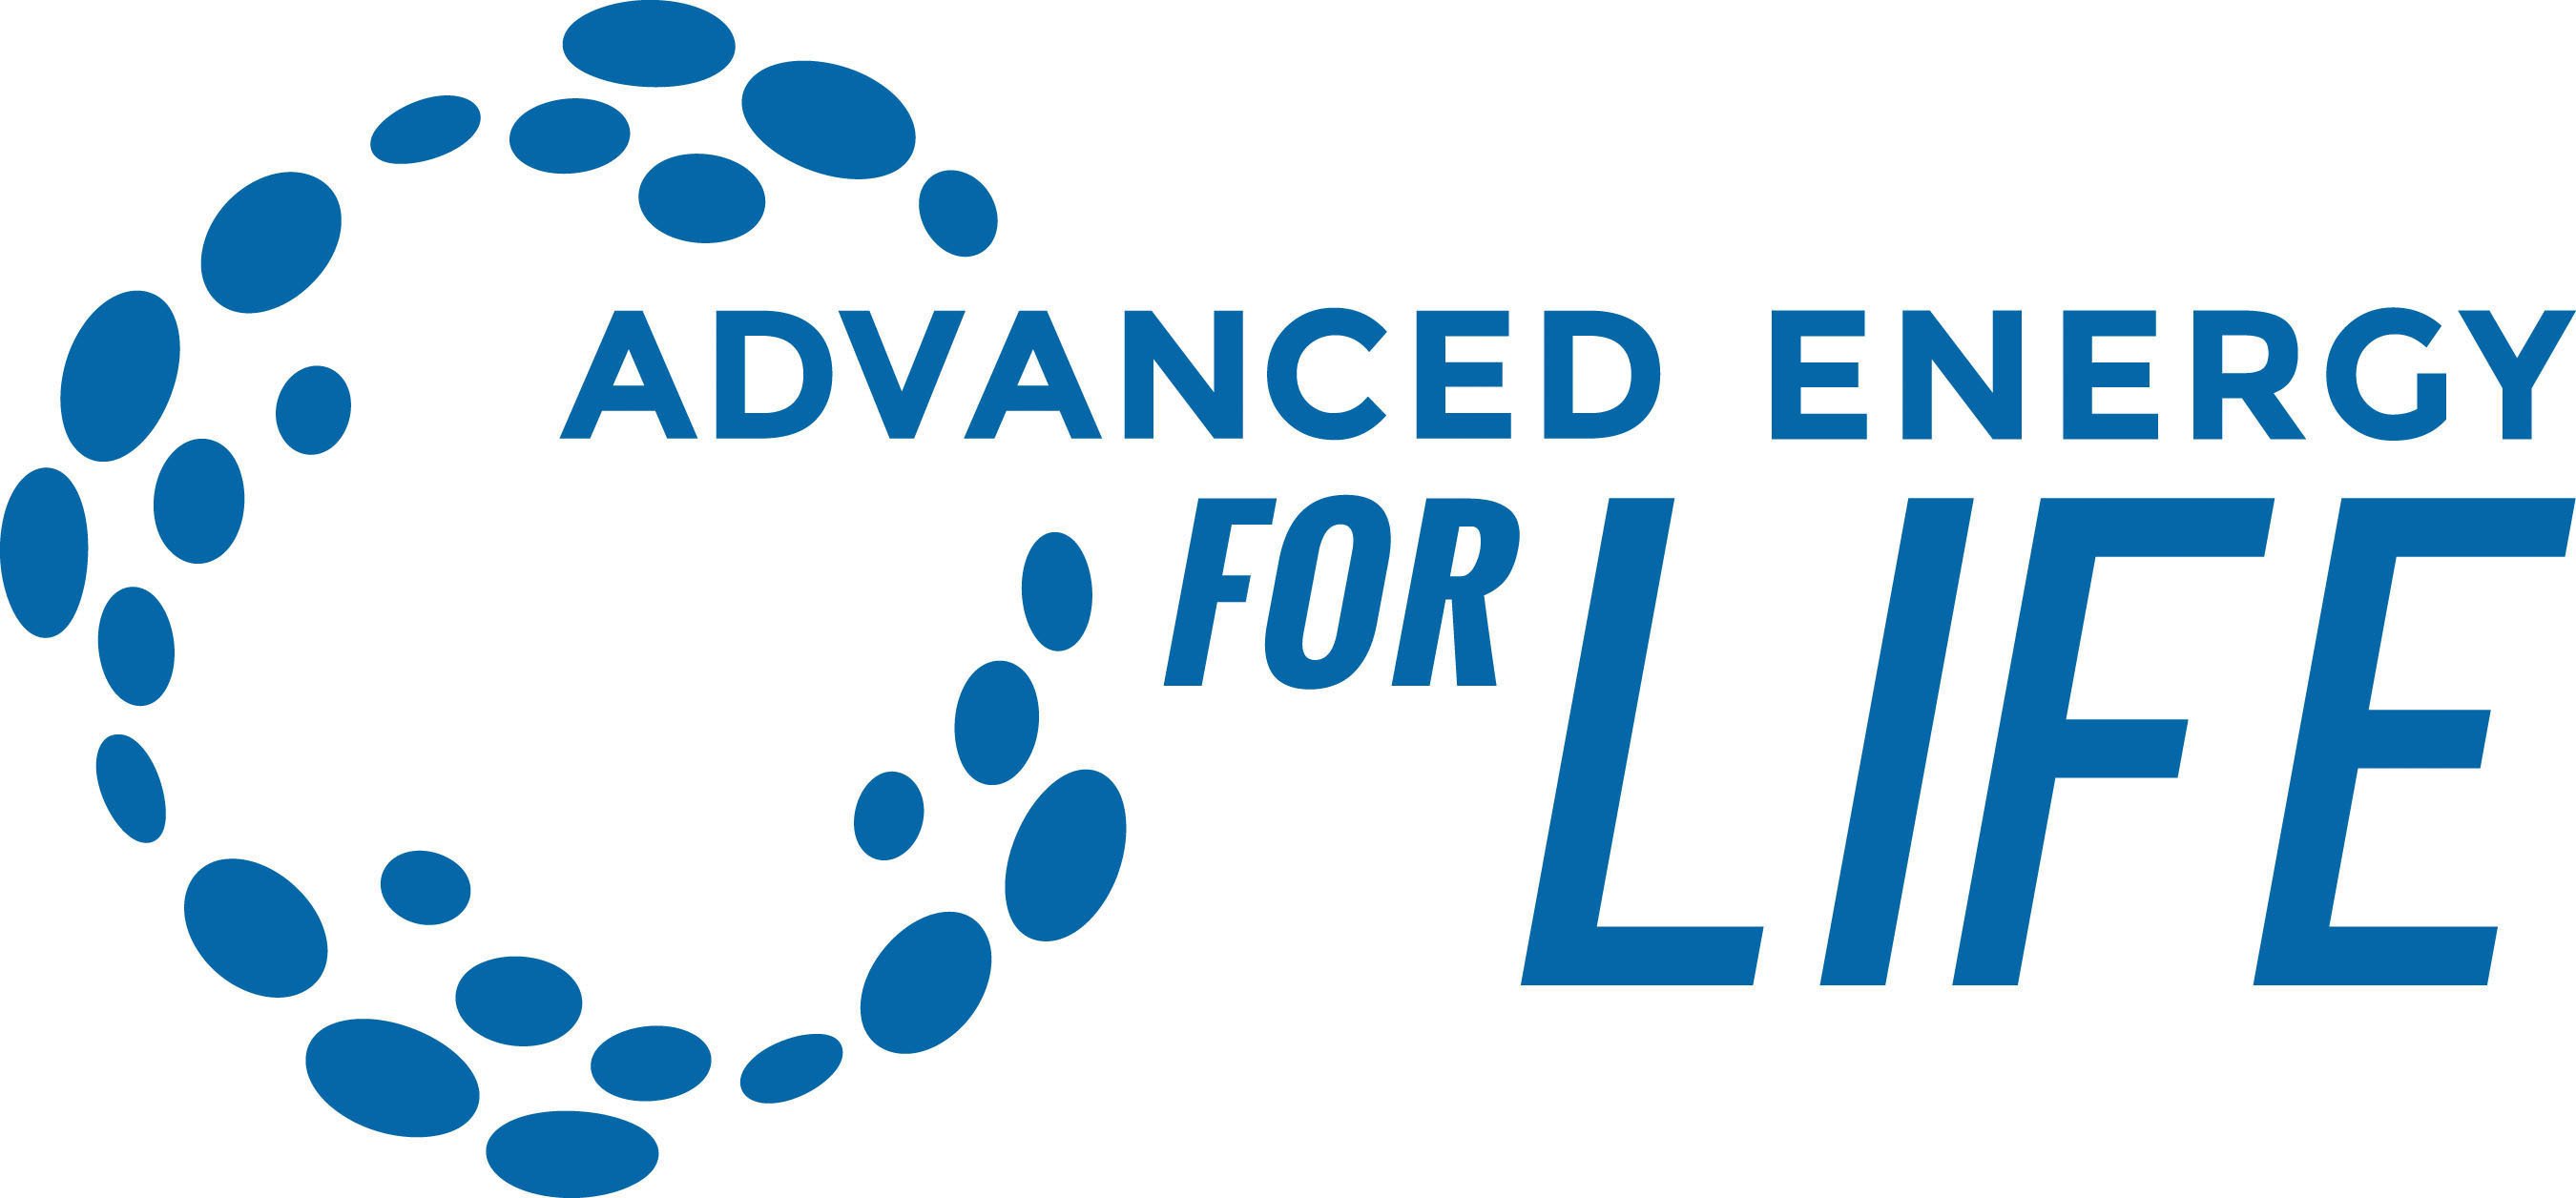 Advanced Energy for Life is a campaign to raise awareness and support to end global energy poverty, increase access to low-cost electricity and improve emissions. Please join in the campaign. Visit us at AdvancedEnergyForLife.com and Advanced Energy for Life on Facebook, YouTube, Tumblr, Google+ and Vine. Use our Twitter handle @AdvancedEnergy